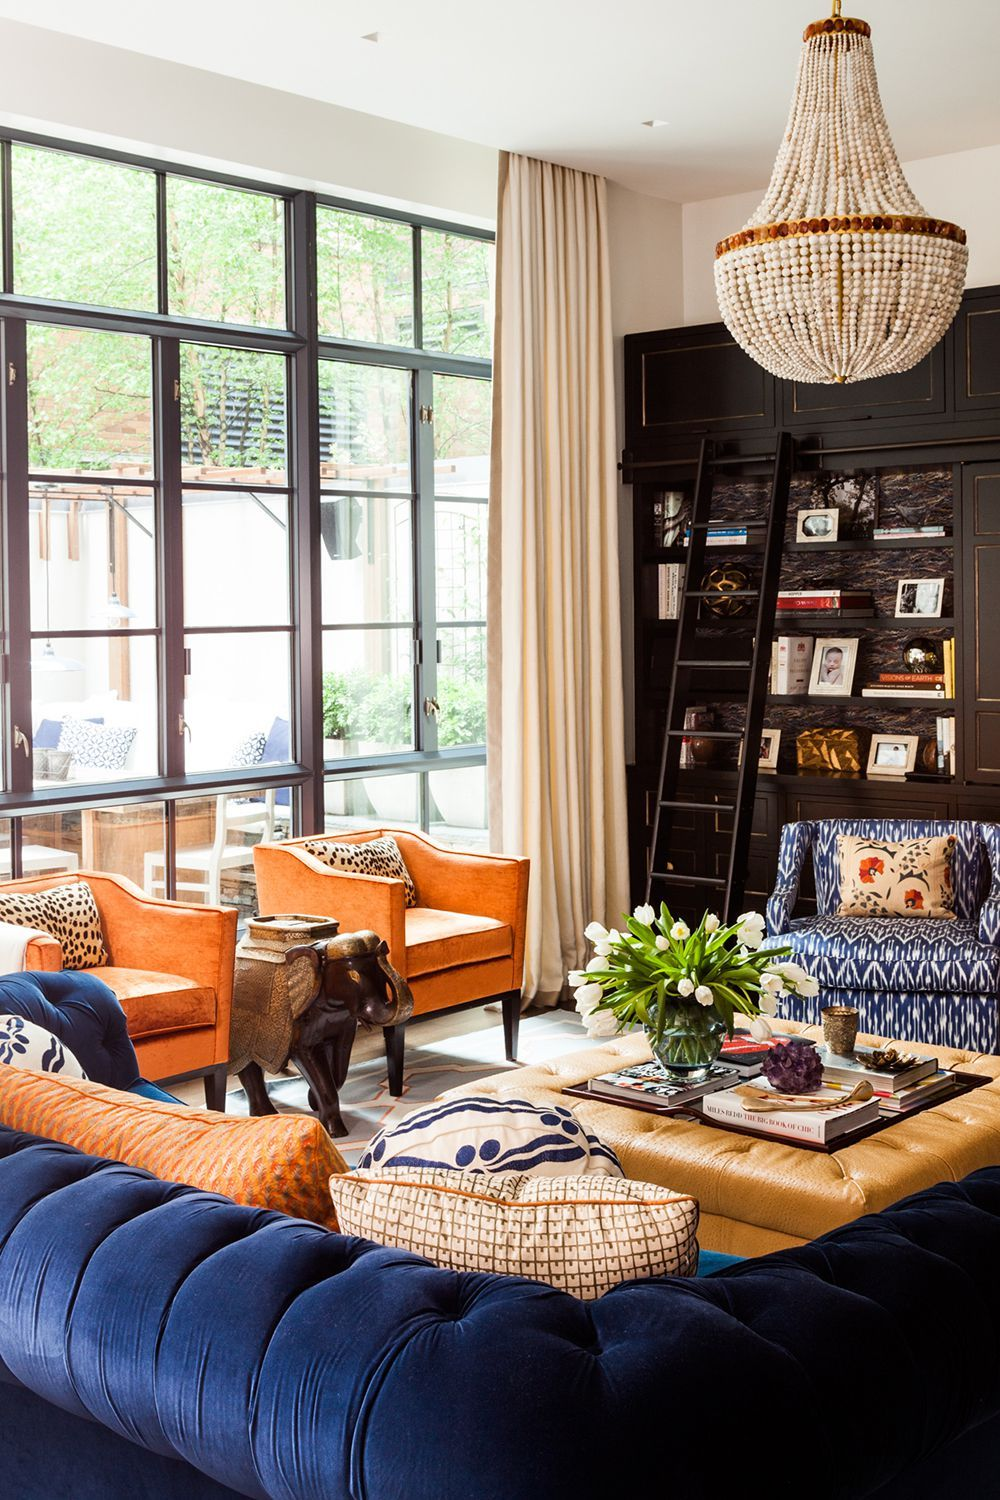 29 Stunning Living Rooms For Every Type of Style | Blue ...